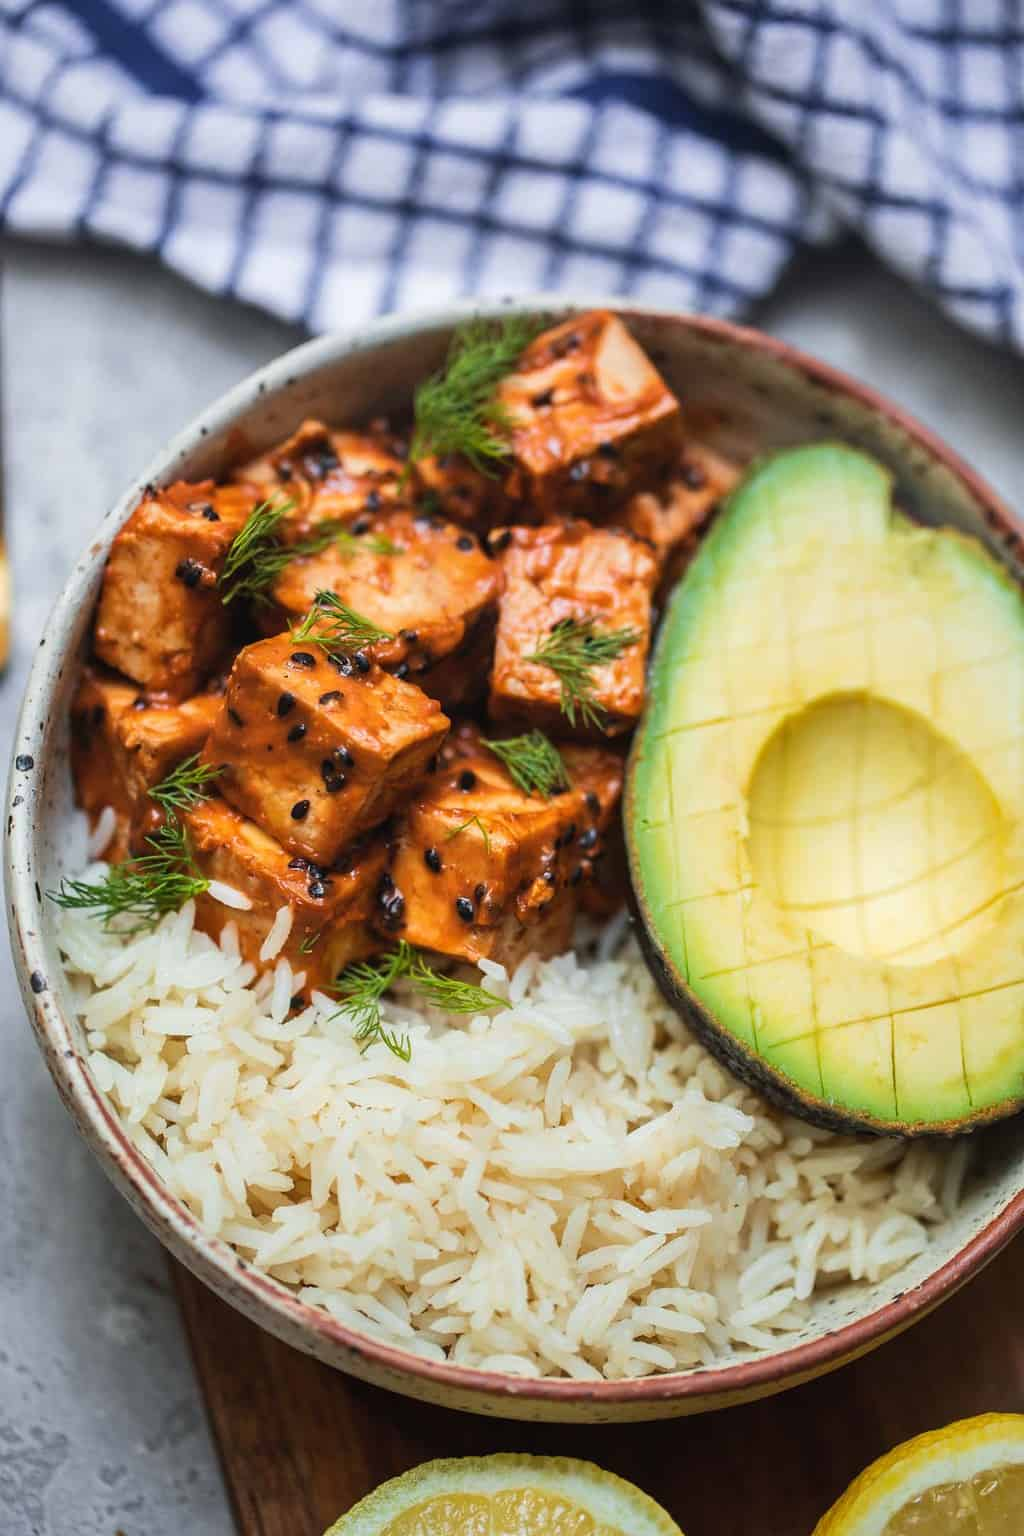 Tofu in a sesame peanut tofu and avocado over a bed of rice